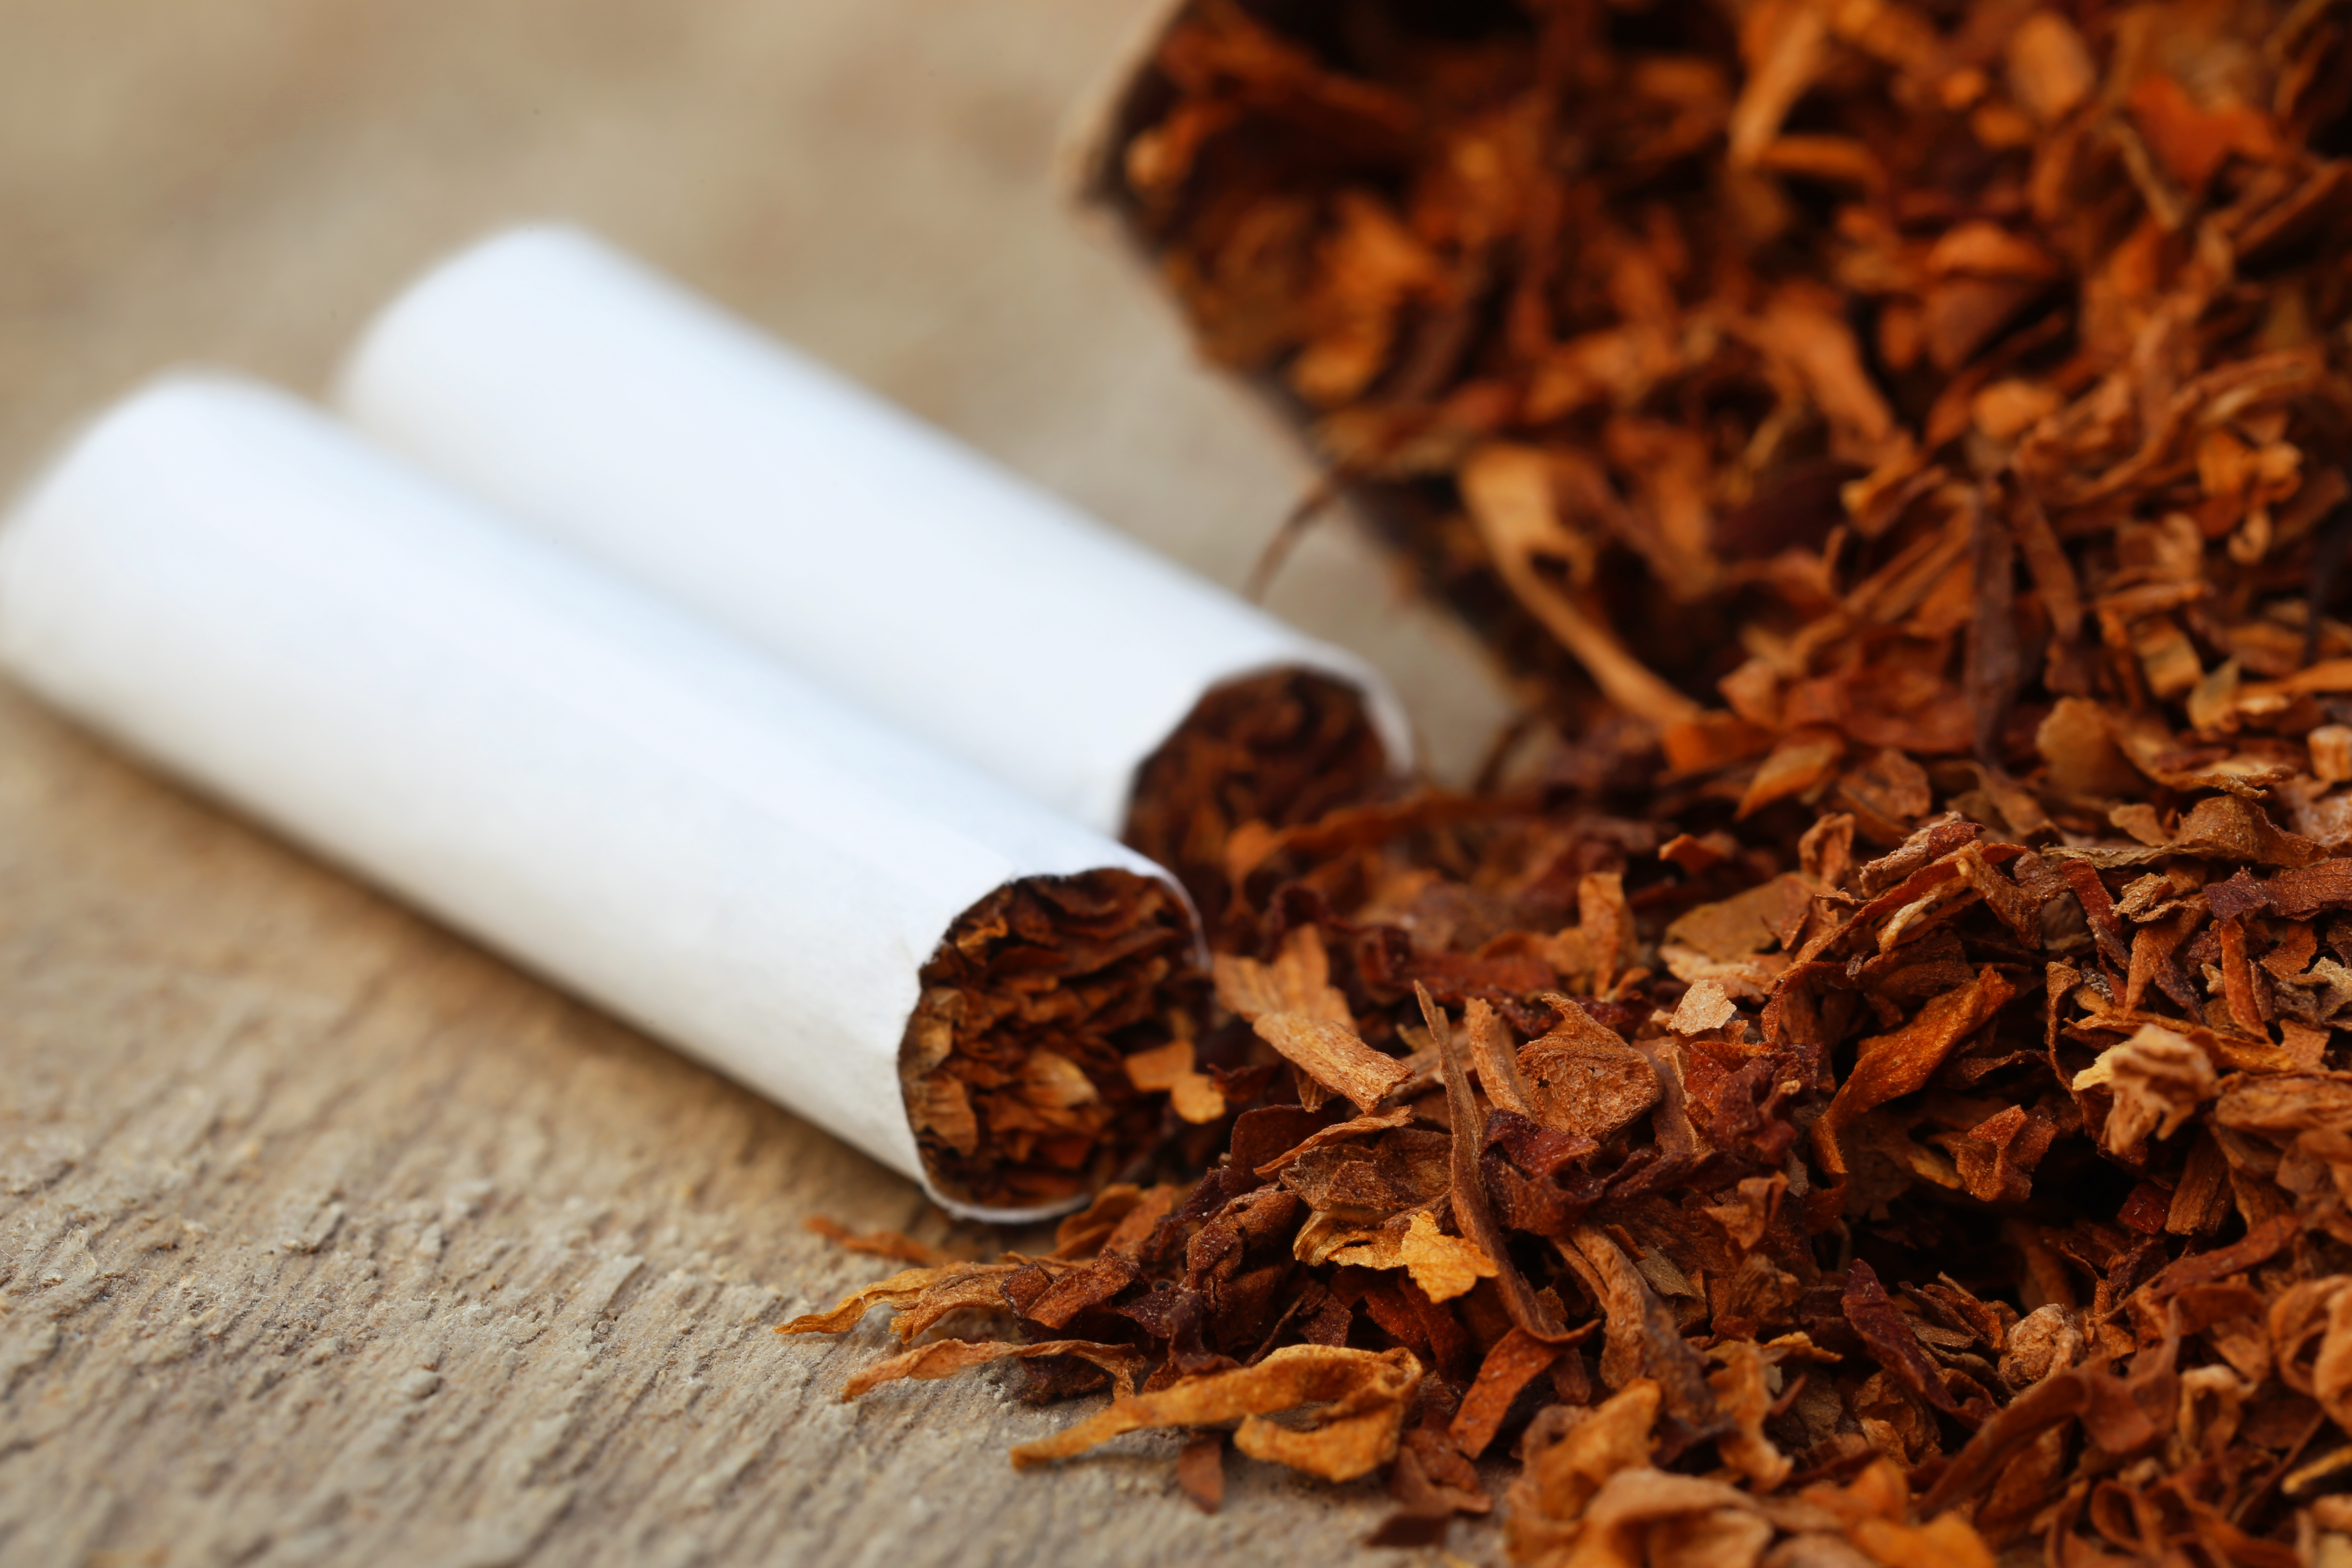 How to Make My Own Herbal Blend Cigarettes   LEAFtv